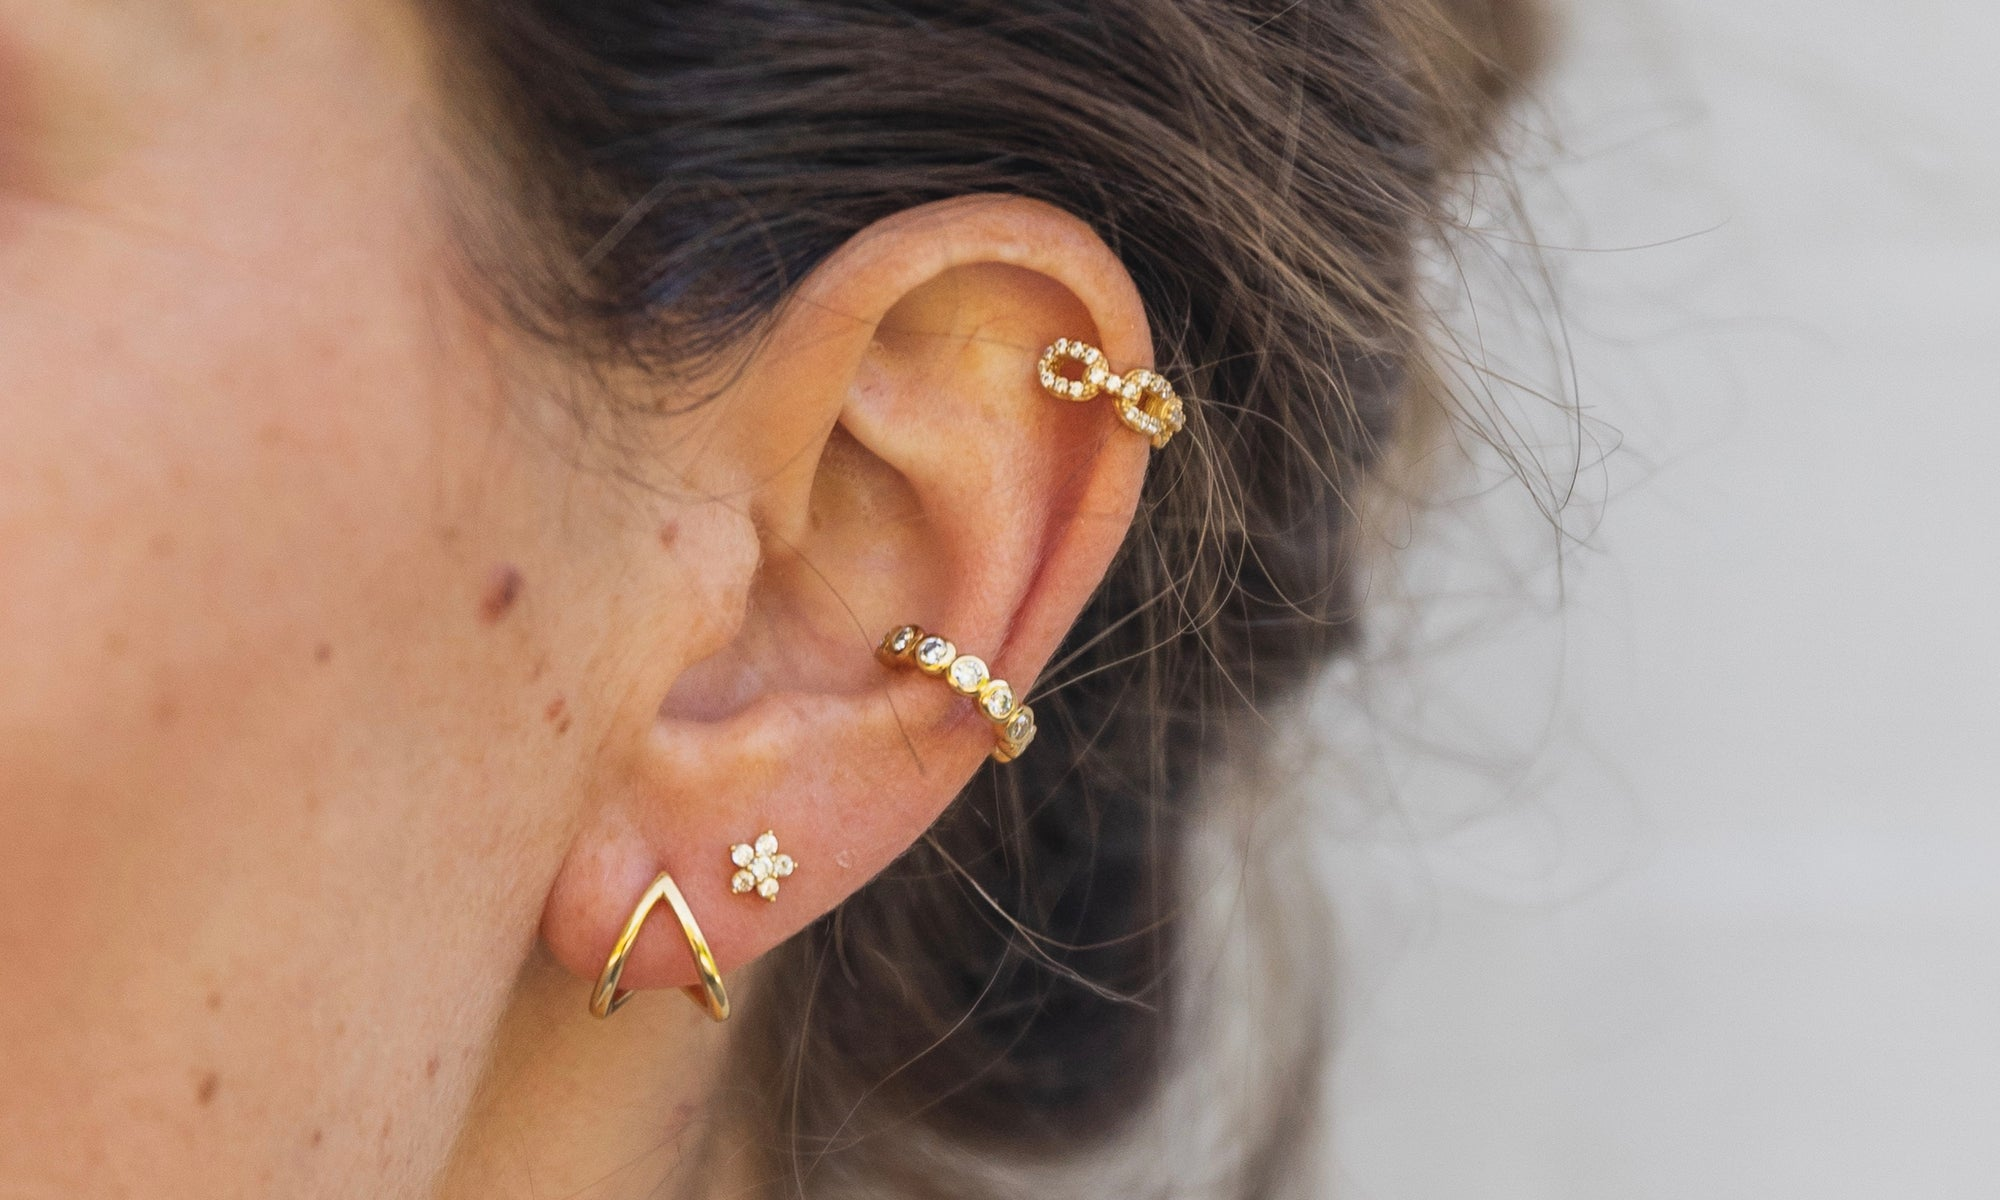 How to play around with earrings